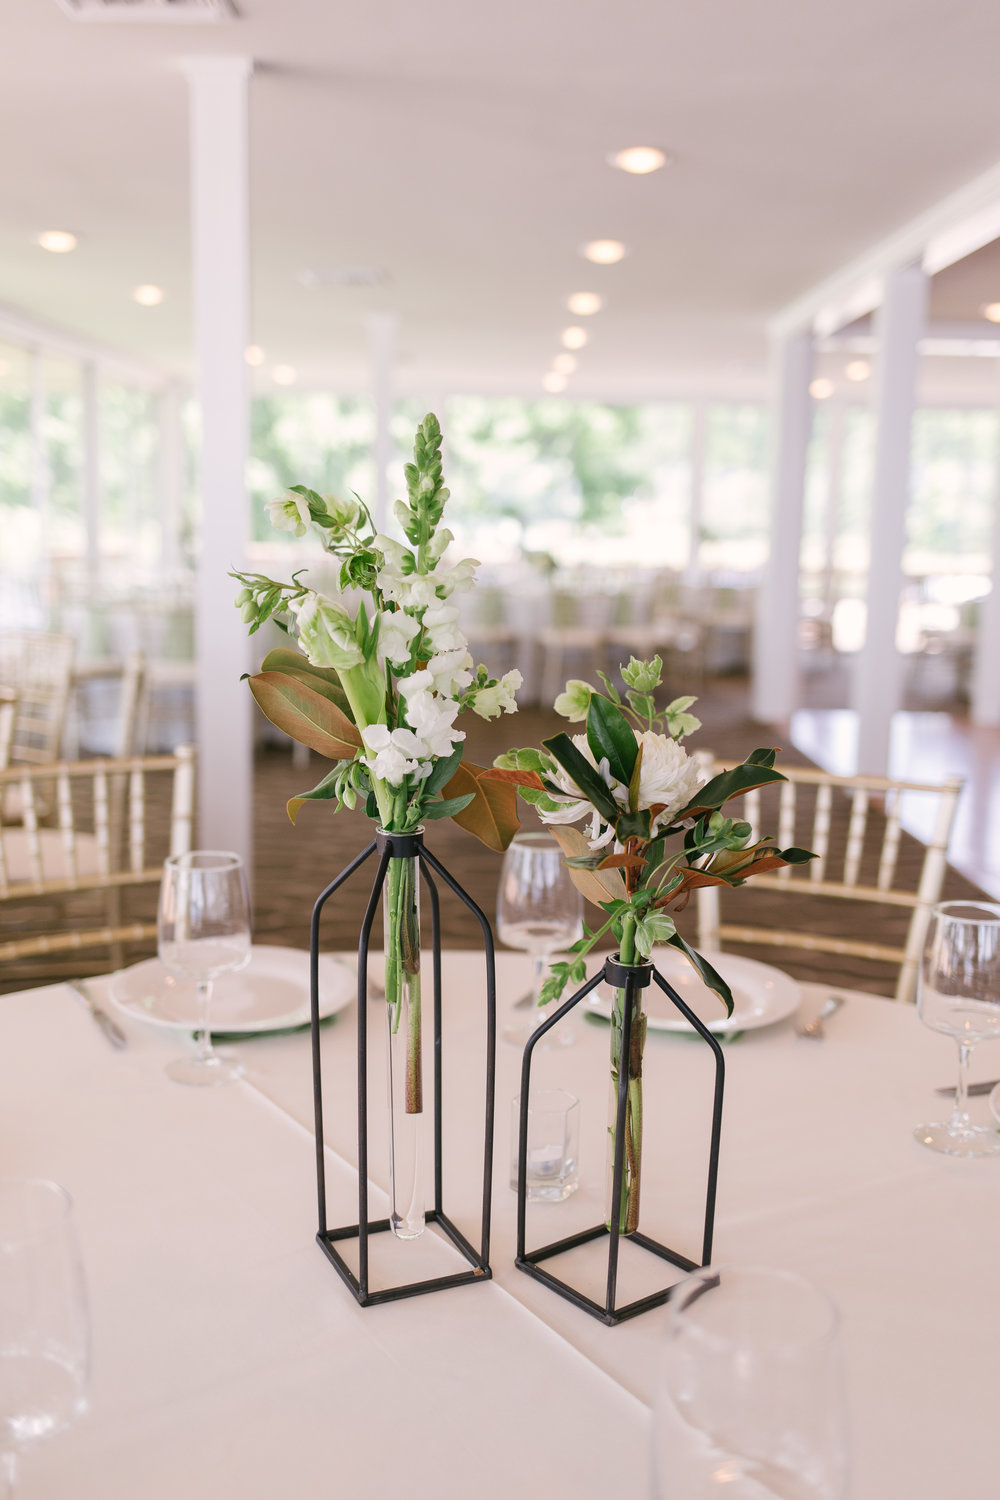 WeddingDaySetUp-8.jpg